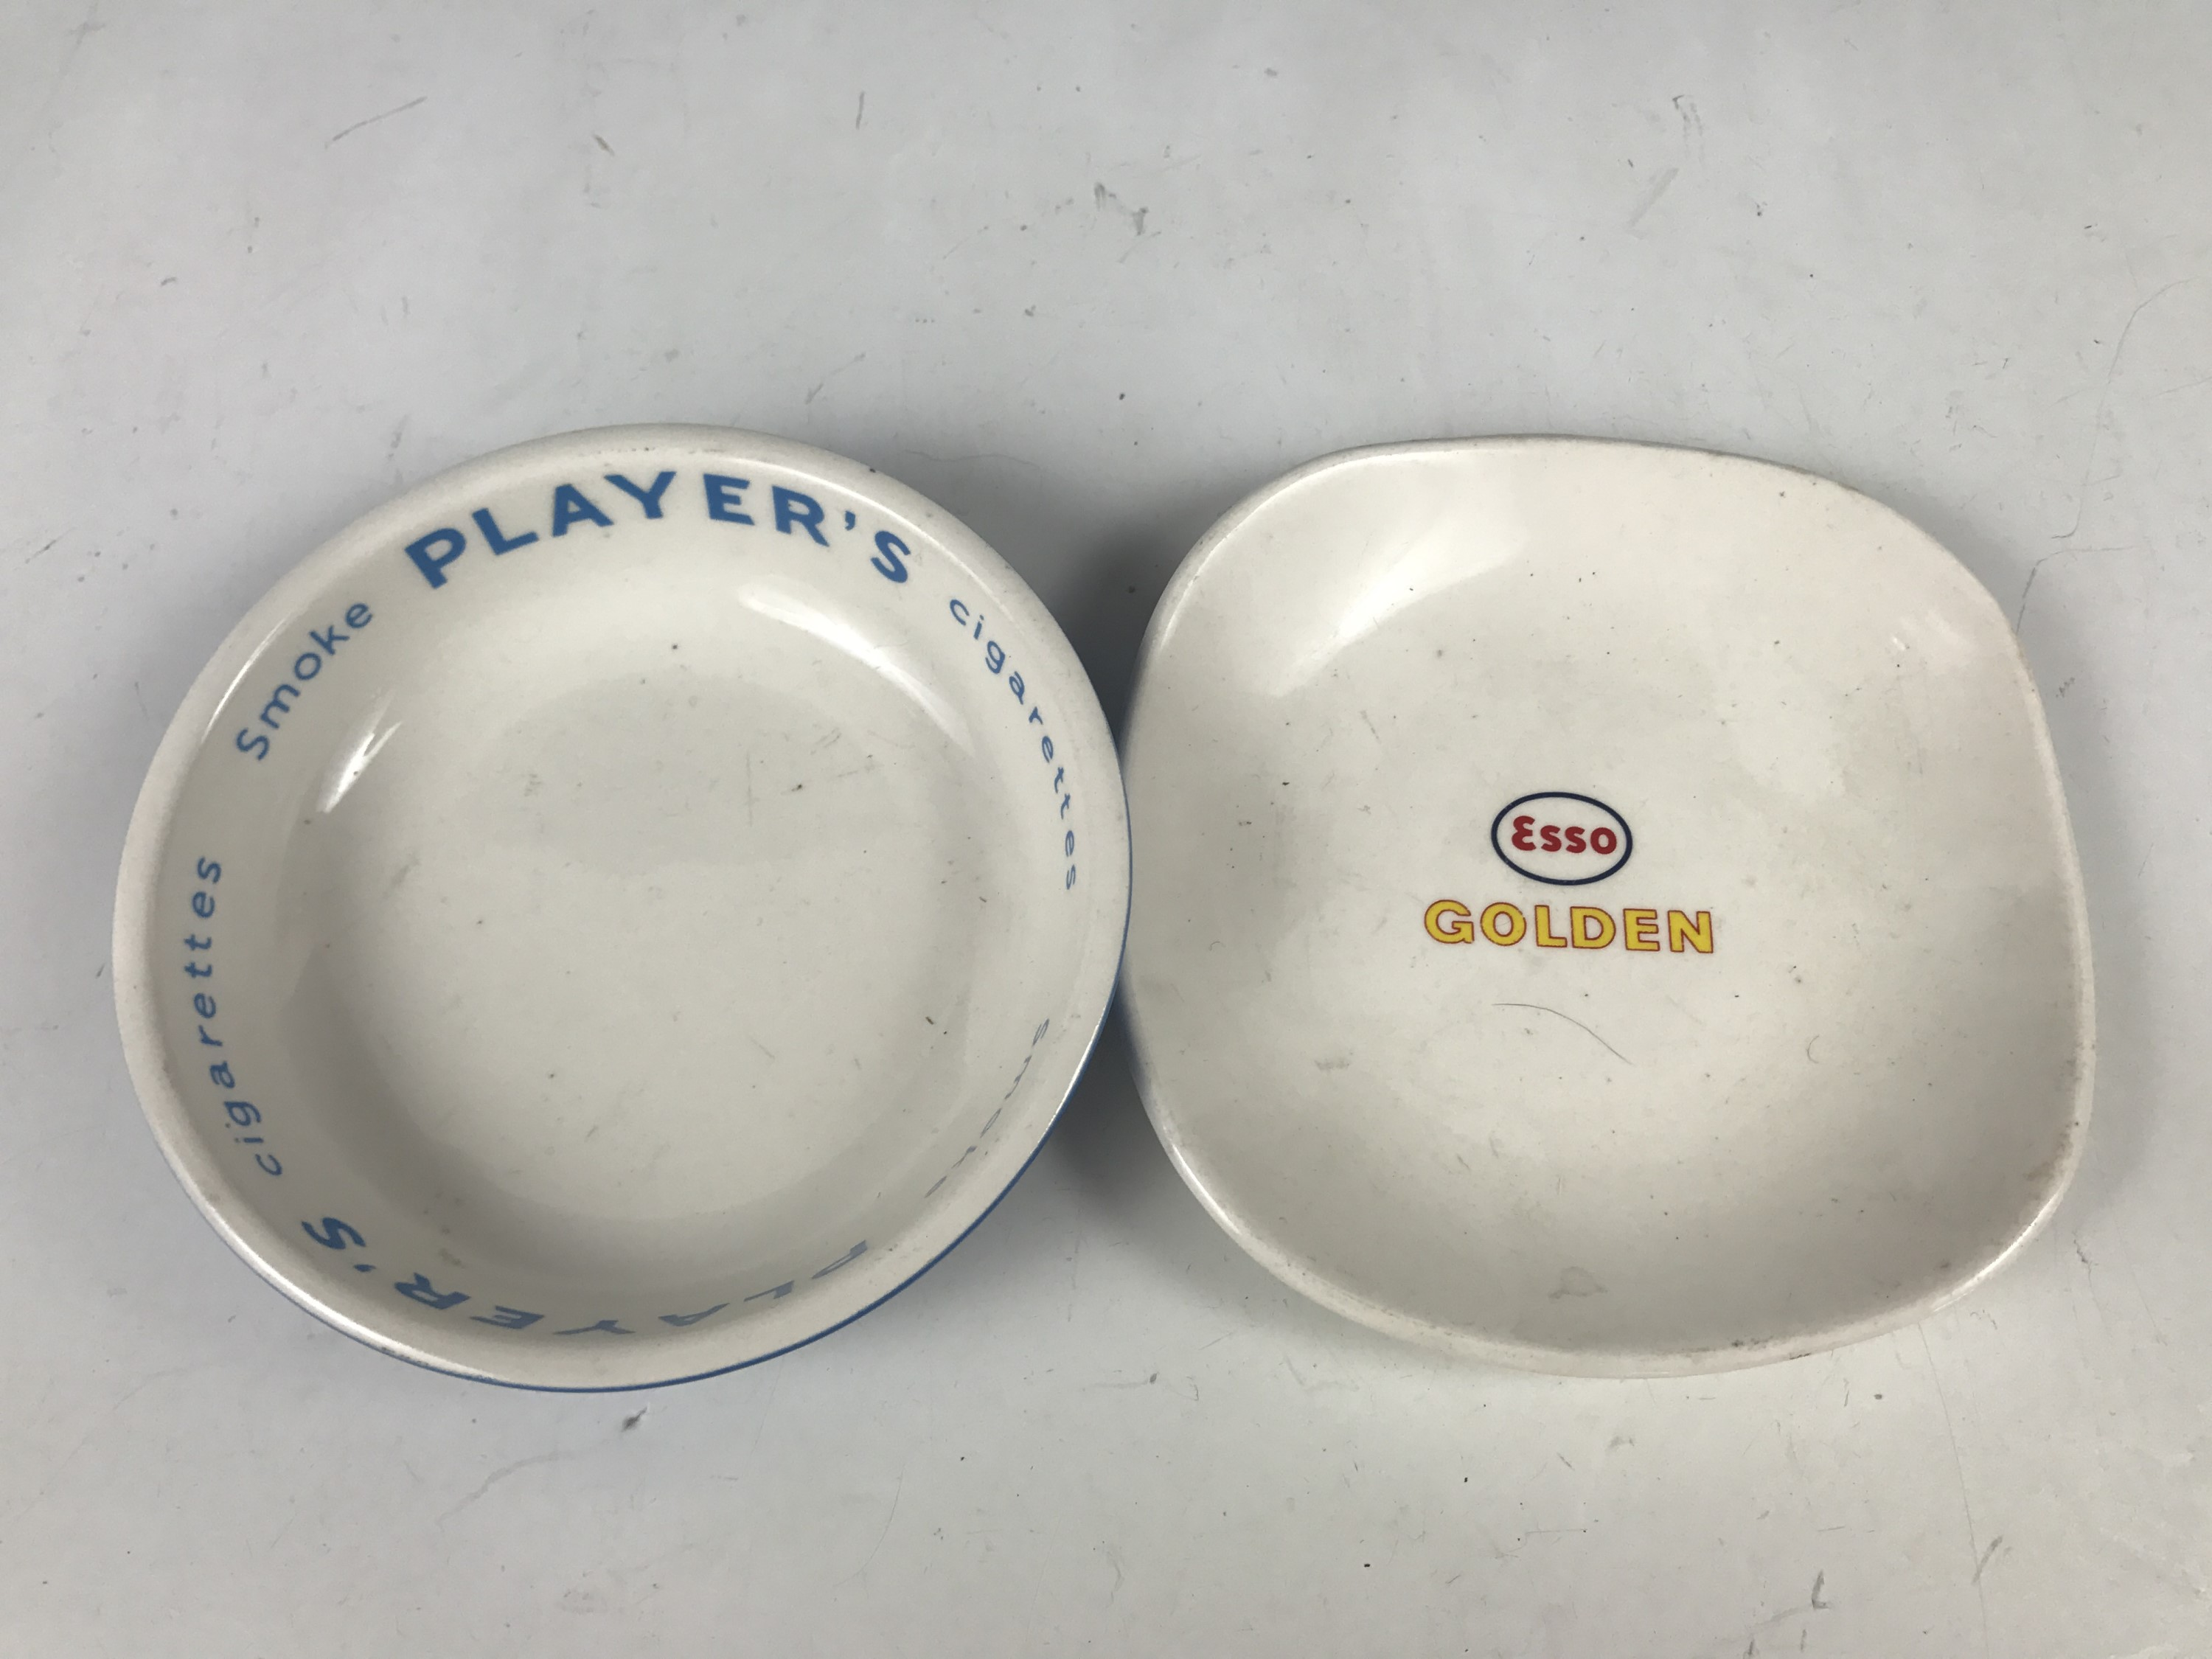 Lot 35 - A Players advertising dish together with an Esso golden dish